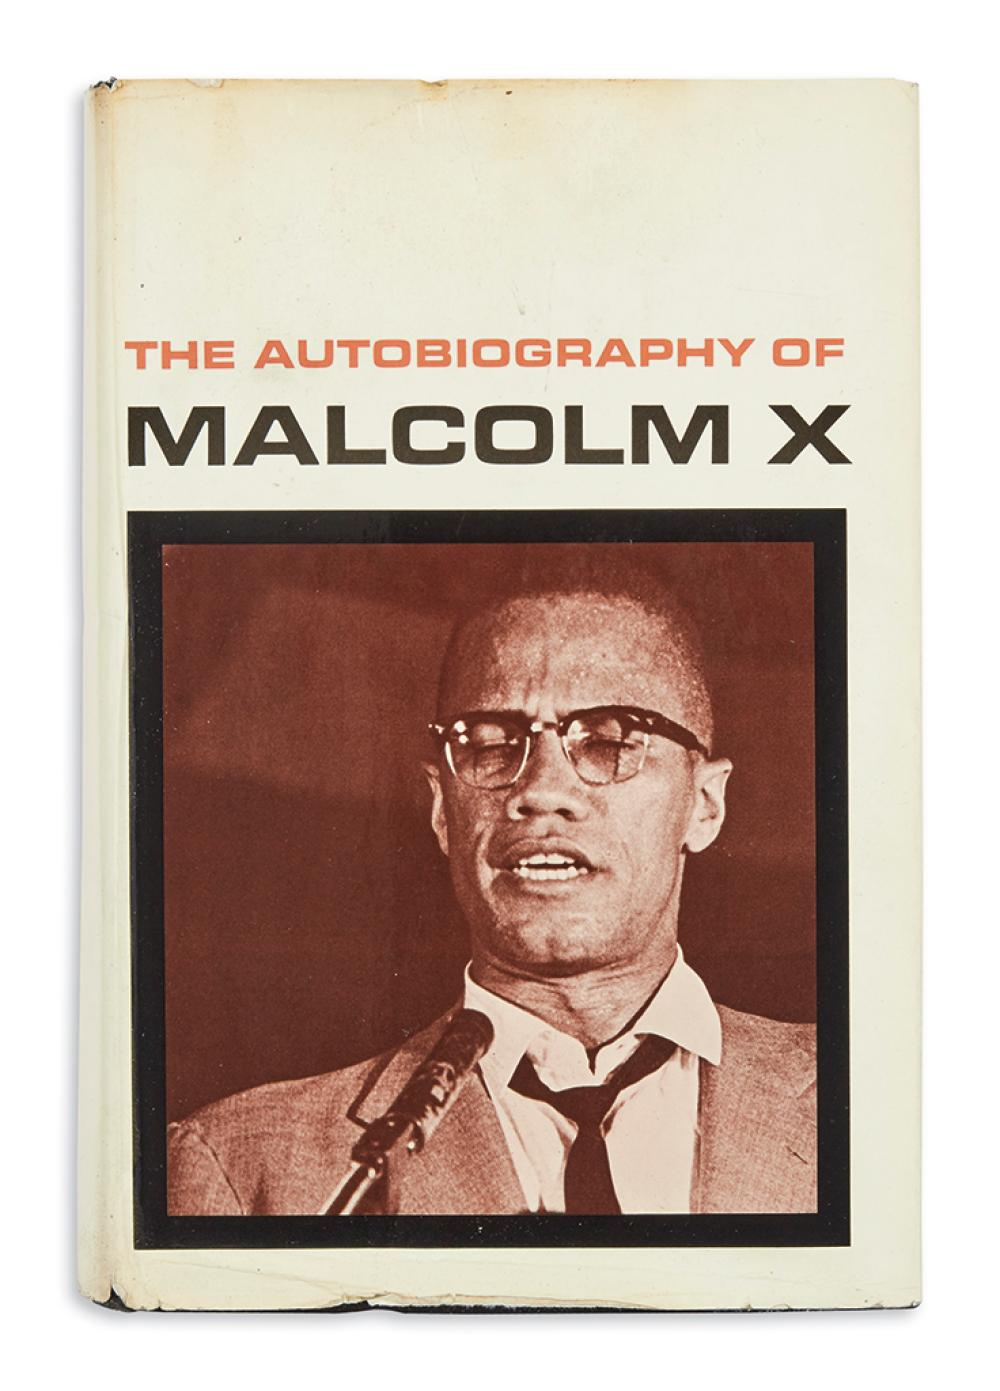 (MALCOLM X.) The Autobiography of Malcolm X.